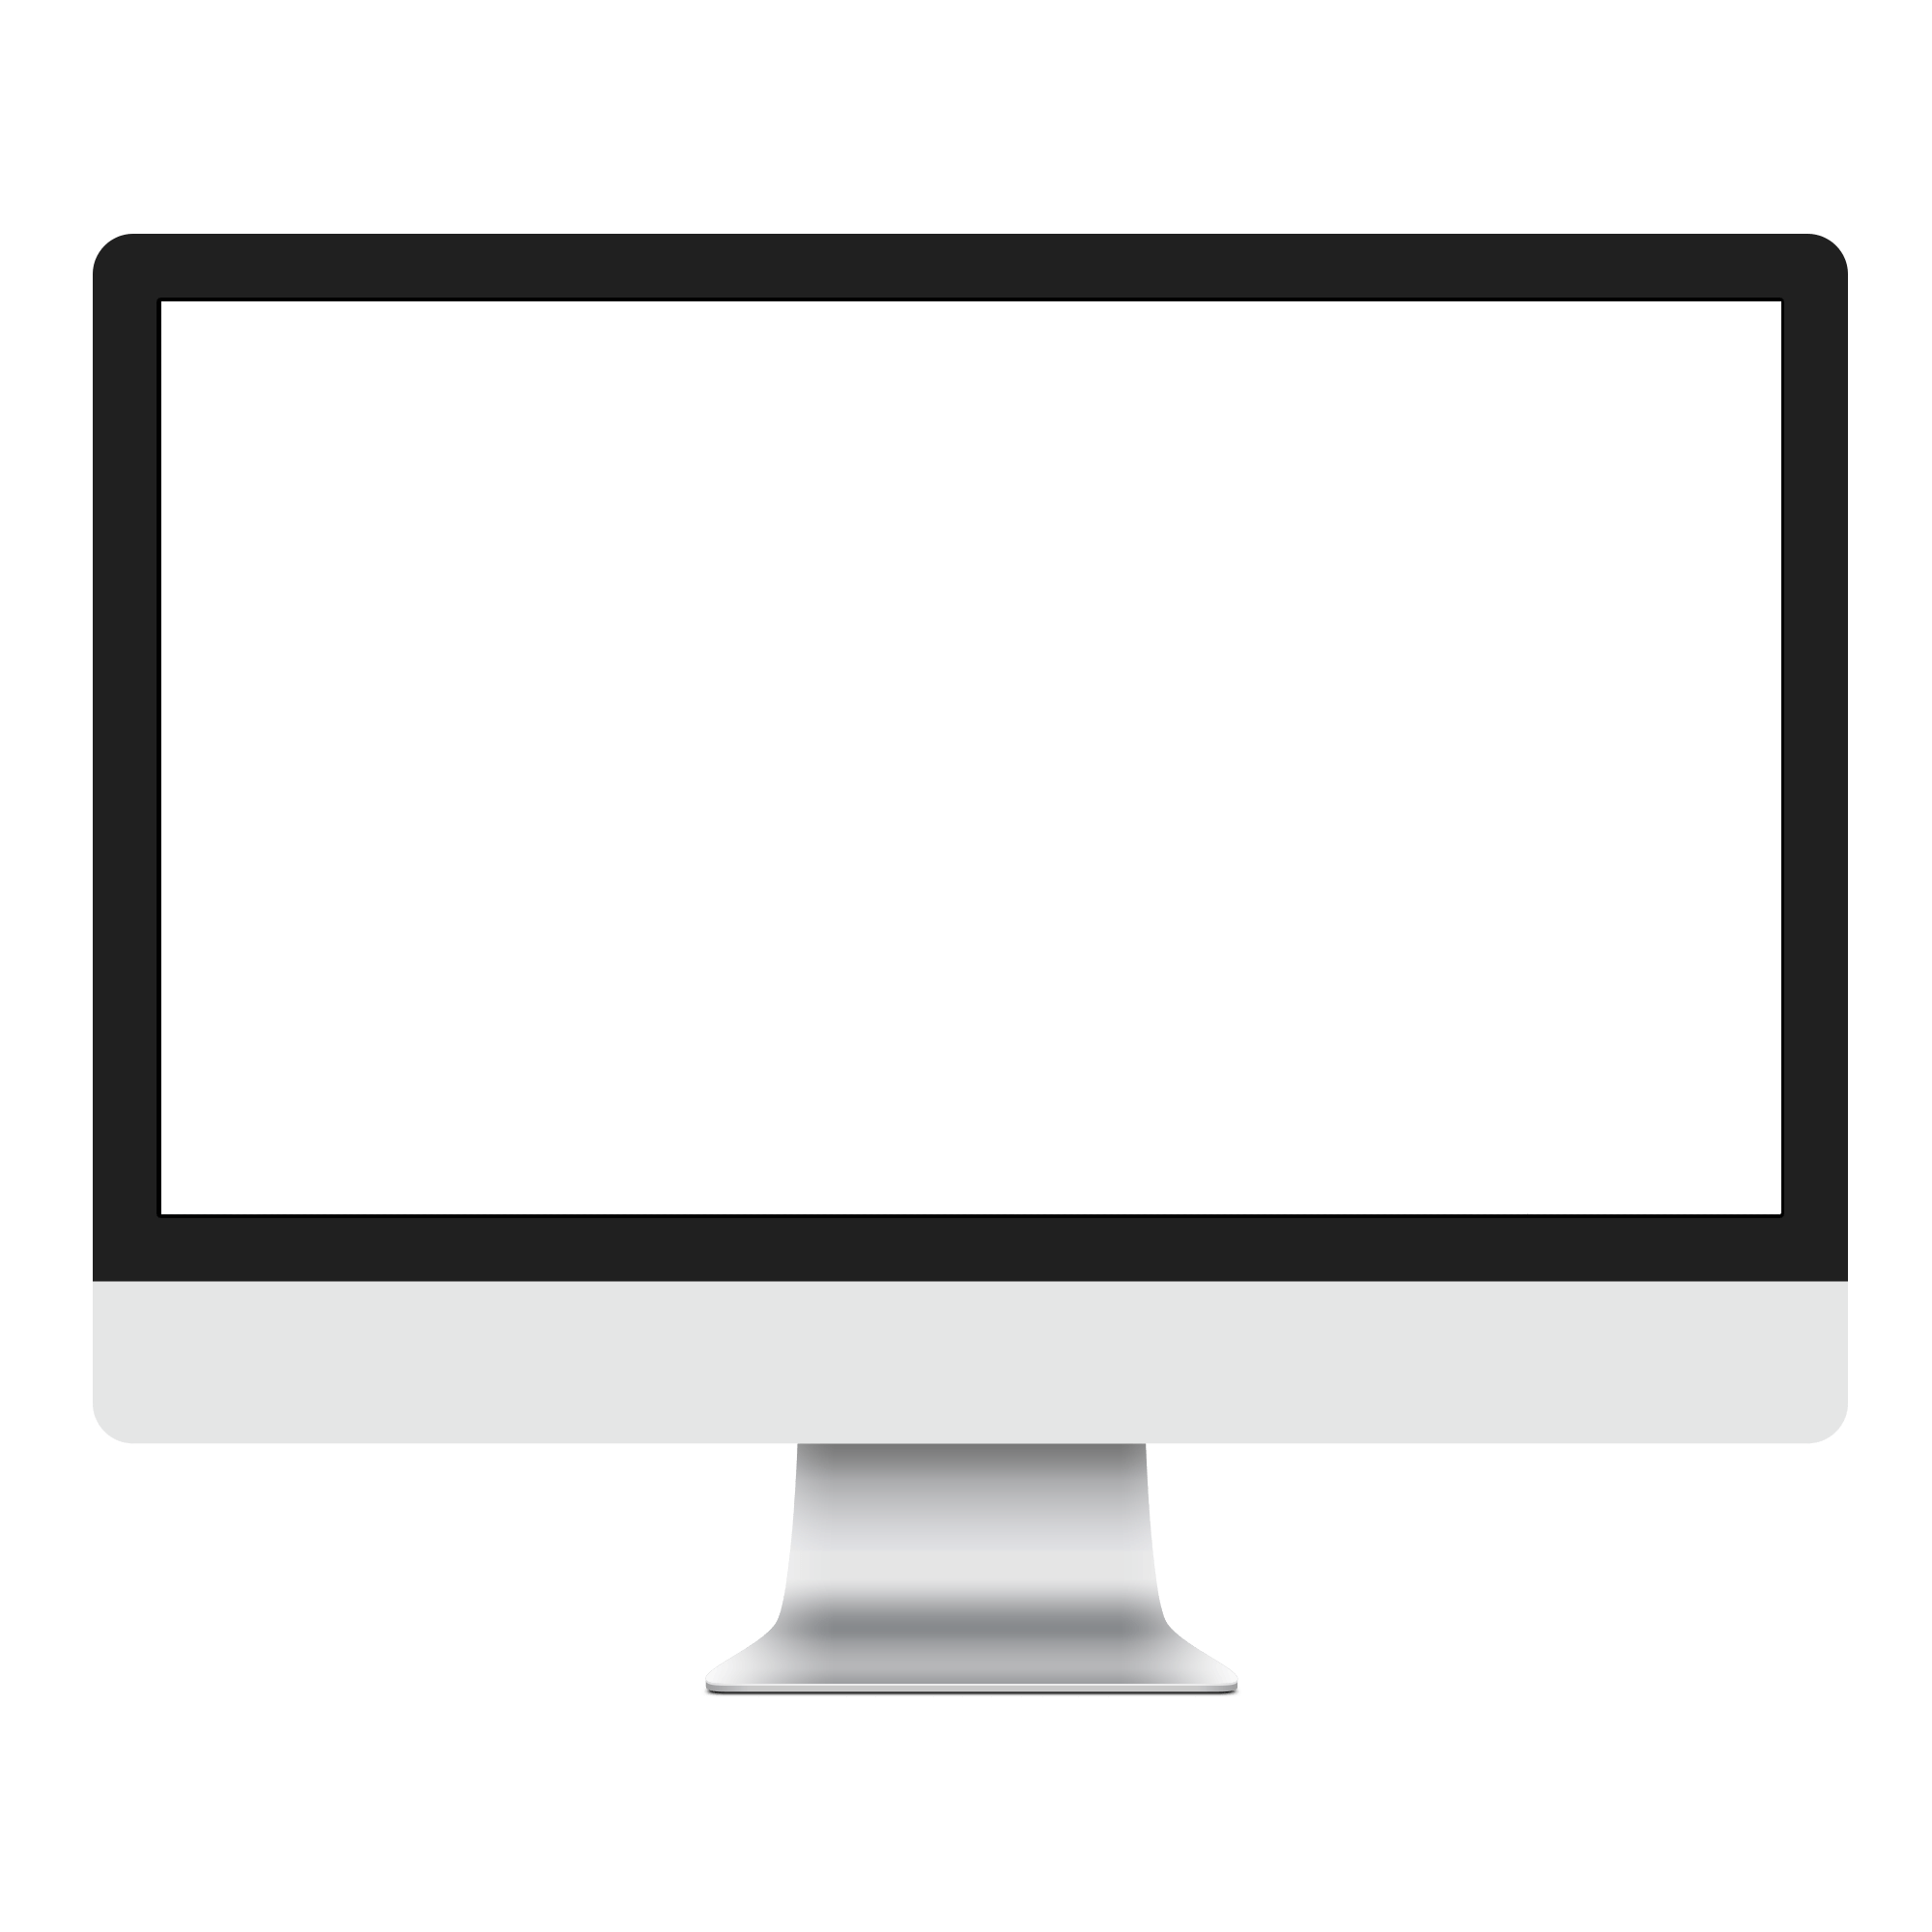 How to create png images free. Macbook pro laptop imac